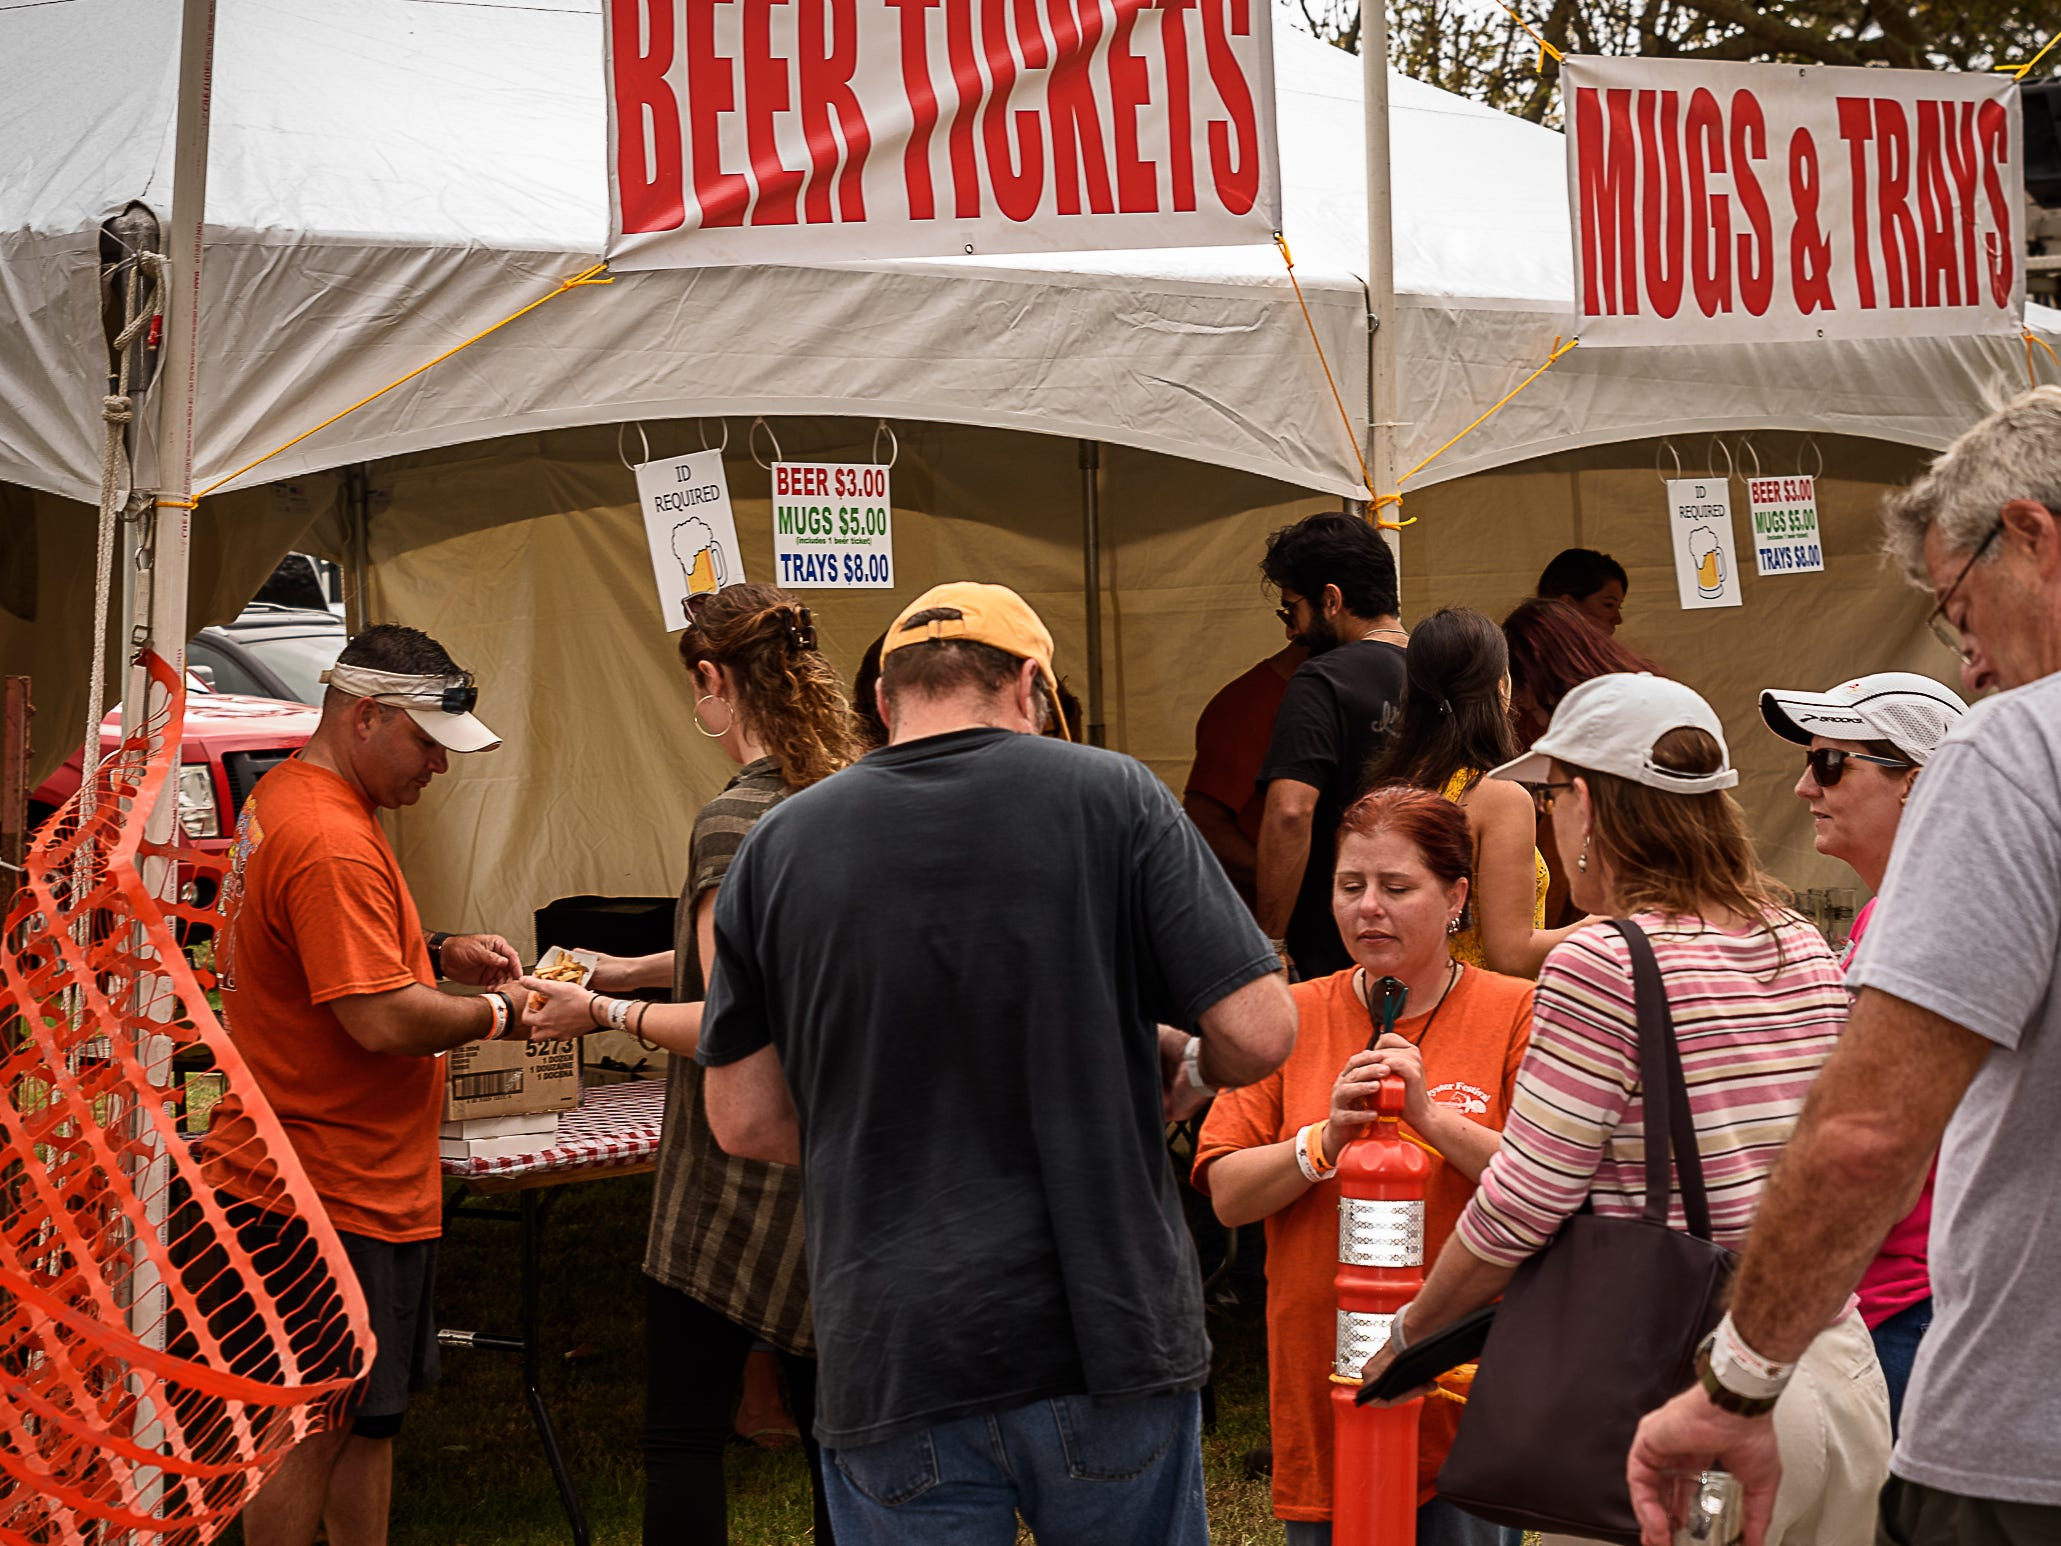 Volunteers check identities of people in the  line for beer tickets at Chincoteague Oyster Festival.